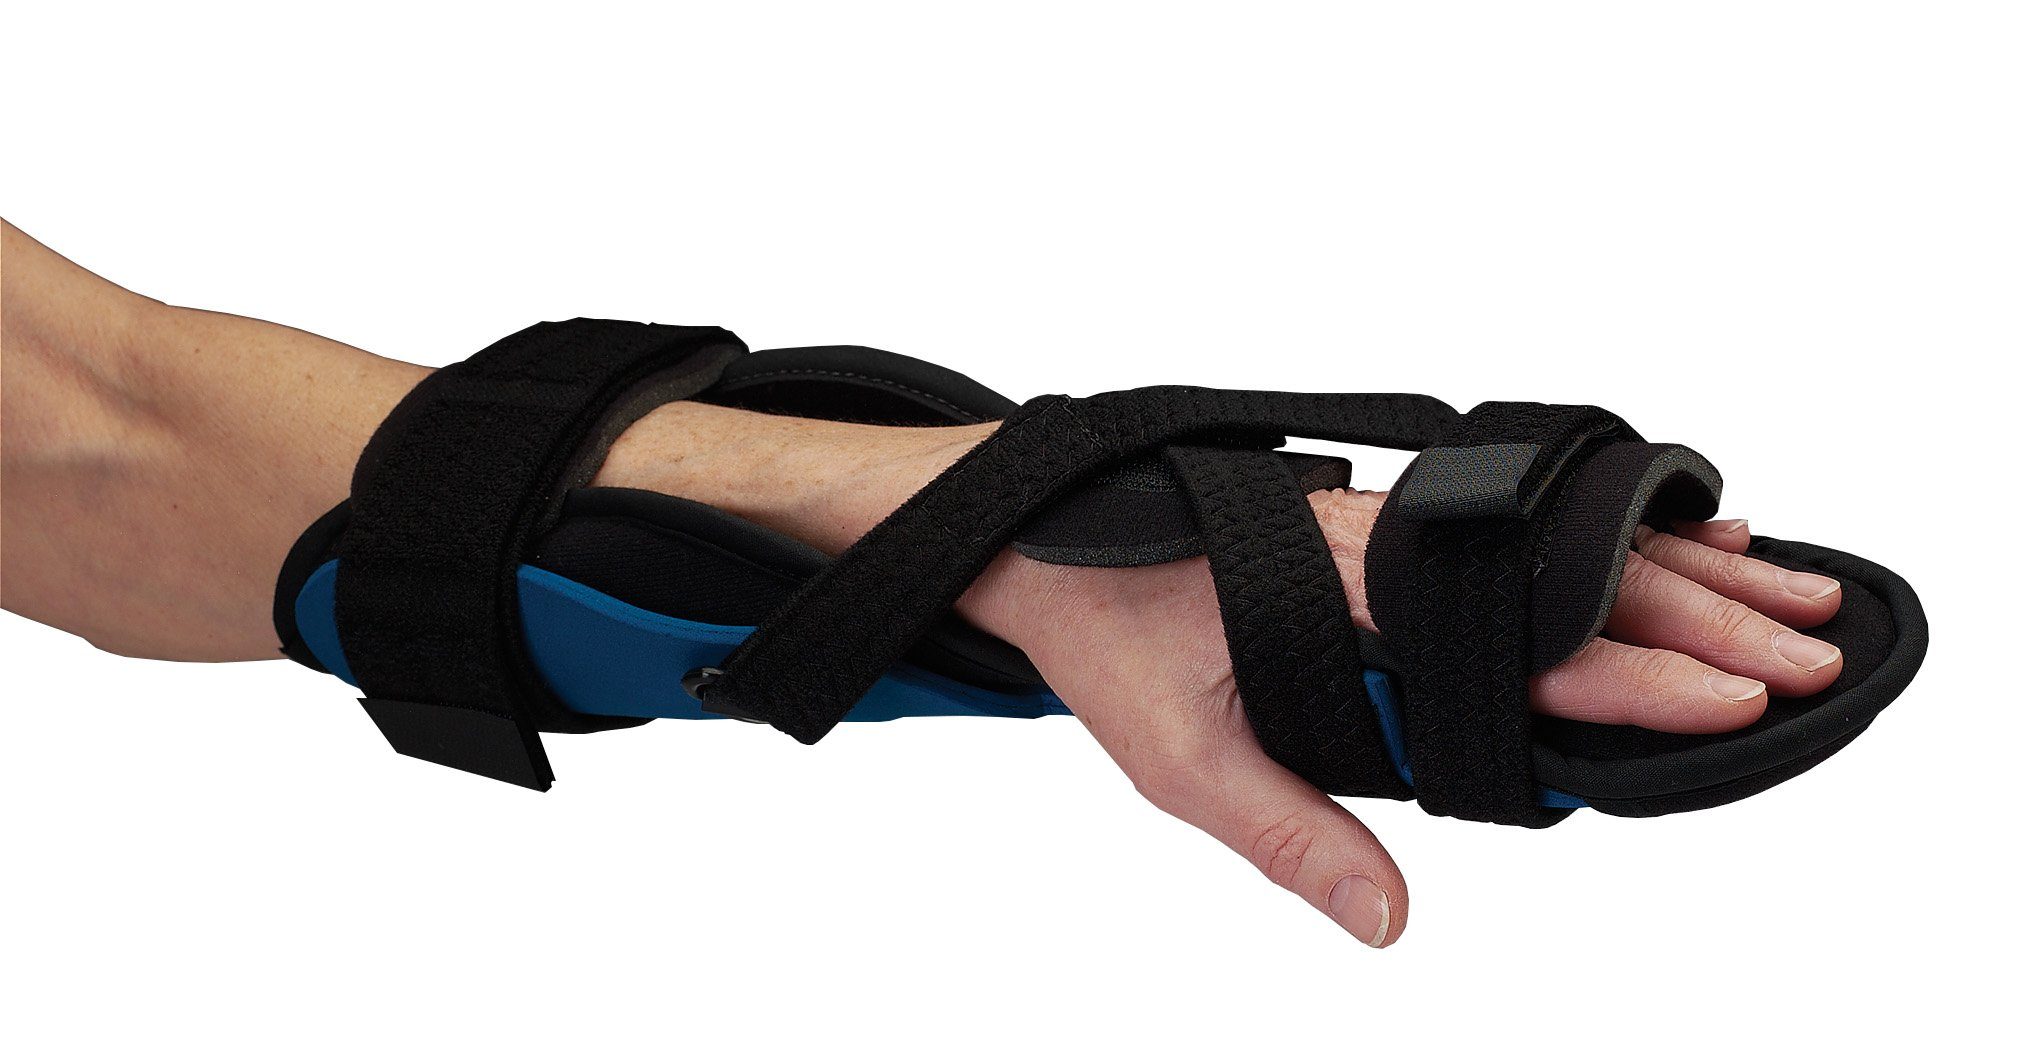 Rolyan Advanced Orthosis, Mitt Brace & Wrist Strap for Customized Positioning, Large, Hand & Wrist Support Splint Allows For Extension/Flexion, Radial/Ulnar & Supination/Pronation Adjustments by Rolyan